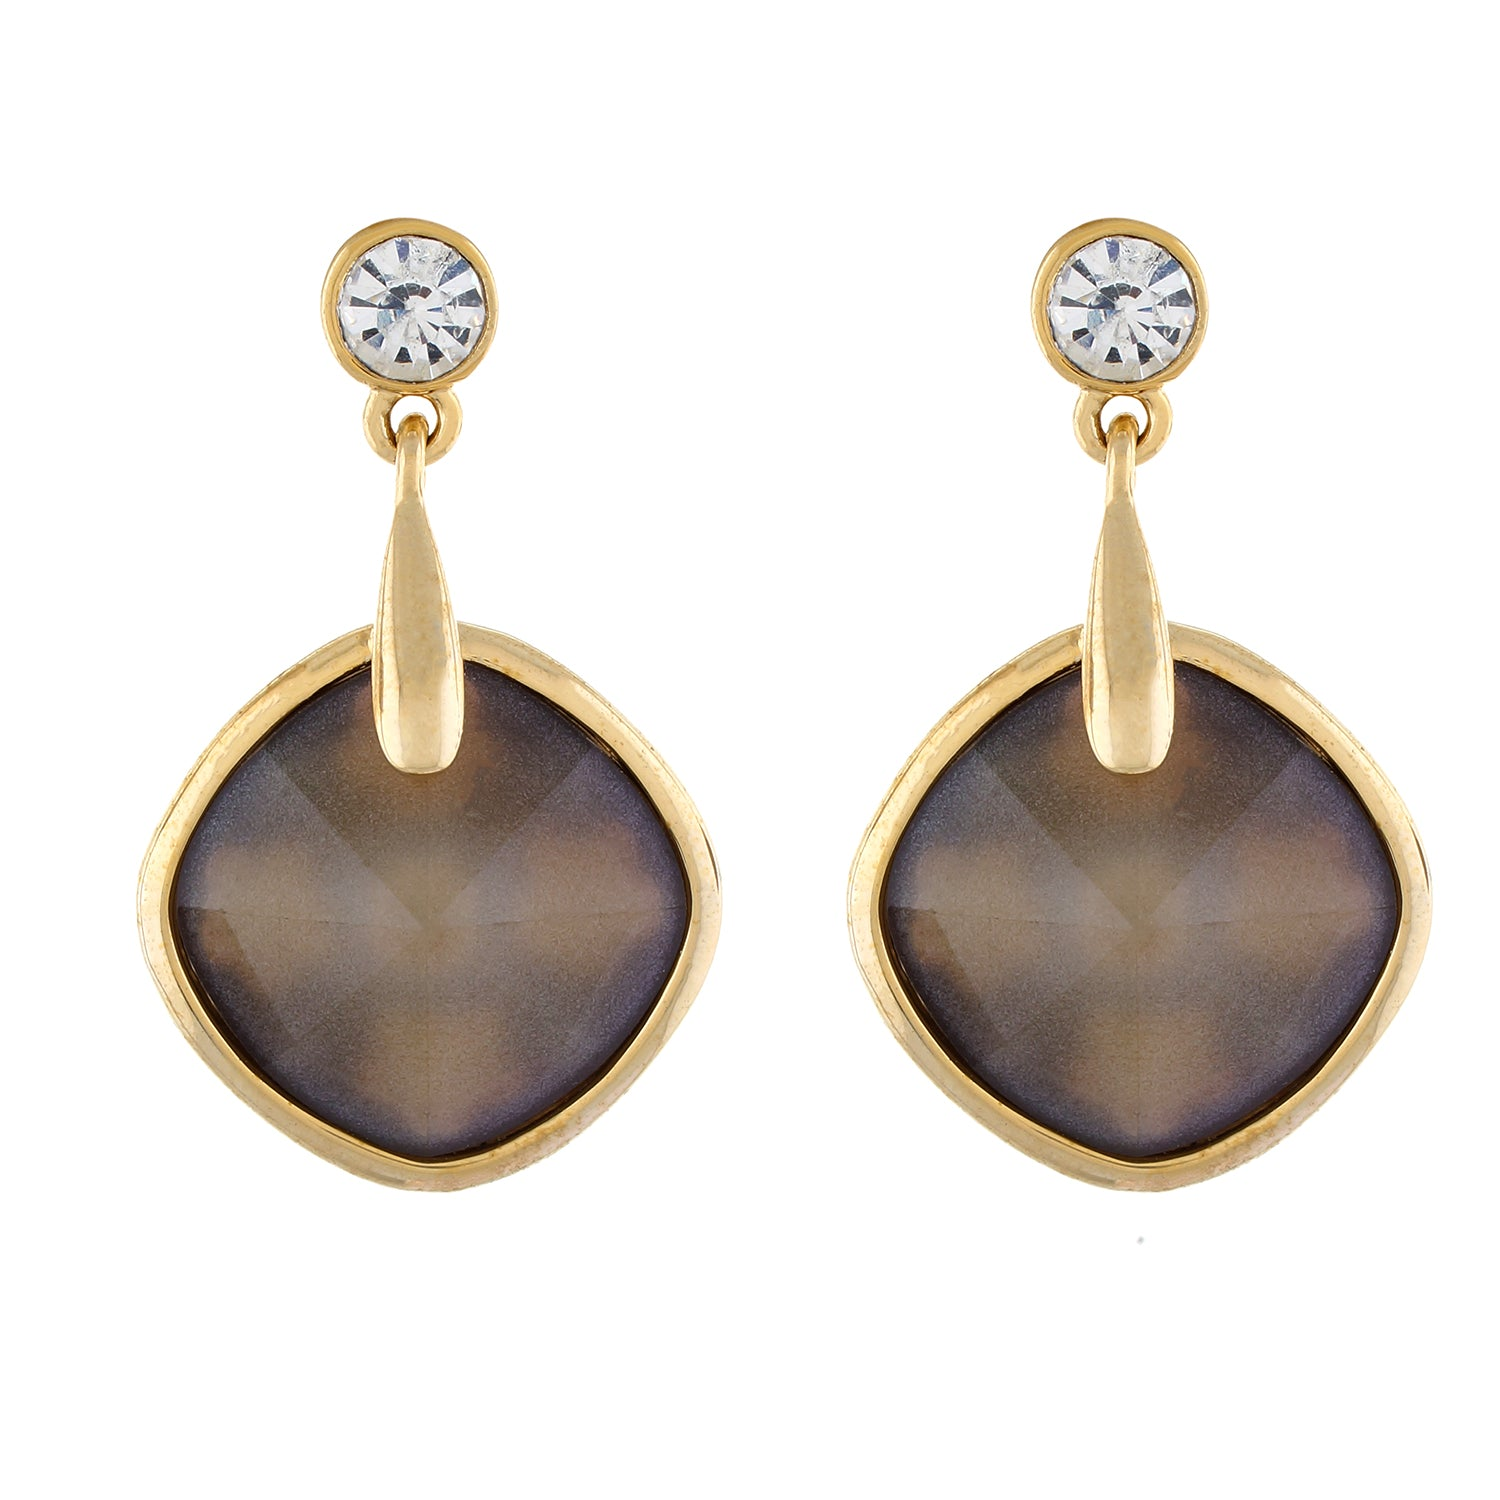 Brown colour Rohmbus Design Hanging Earrings for Girls and Women